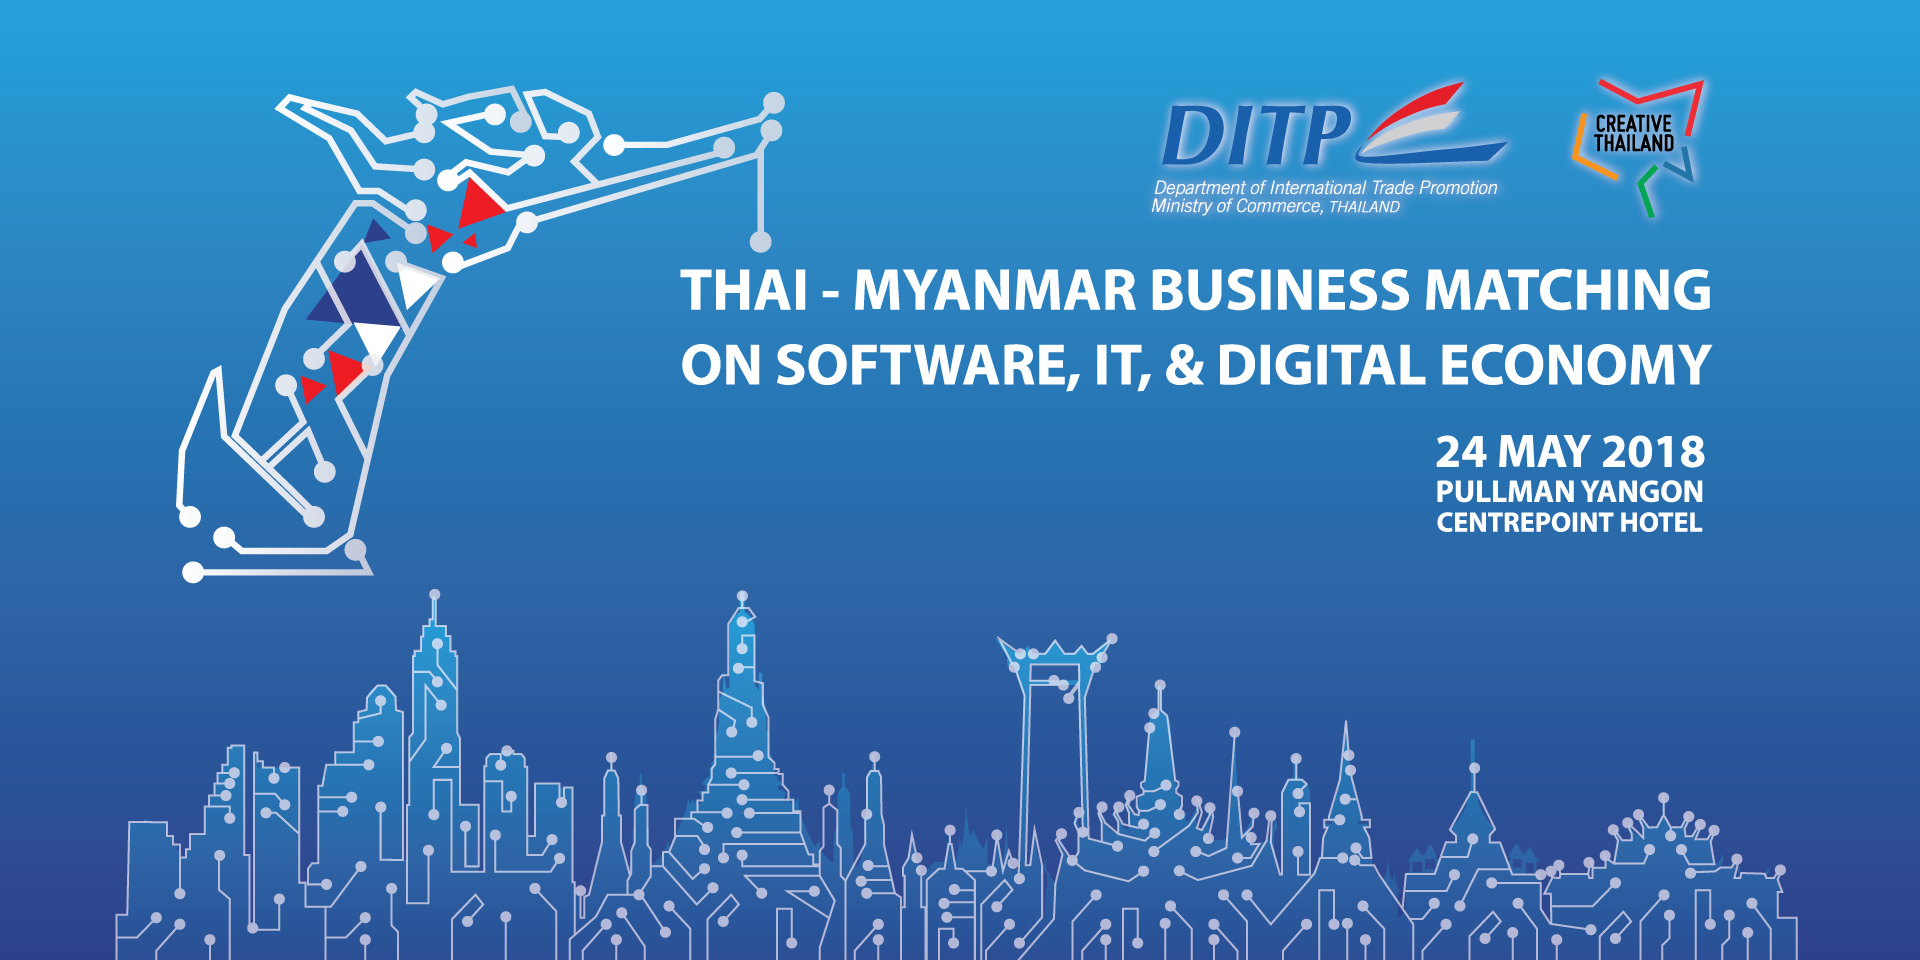 Thai-Myanmar Business Matching